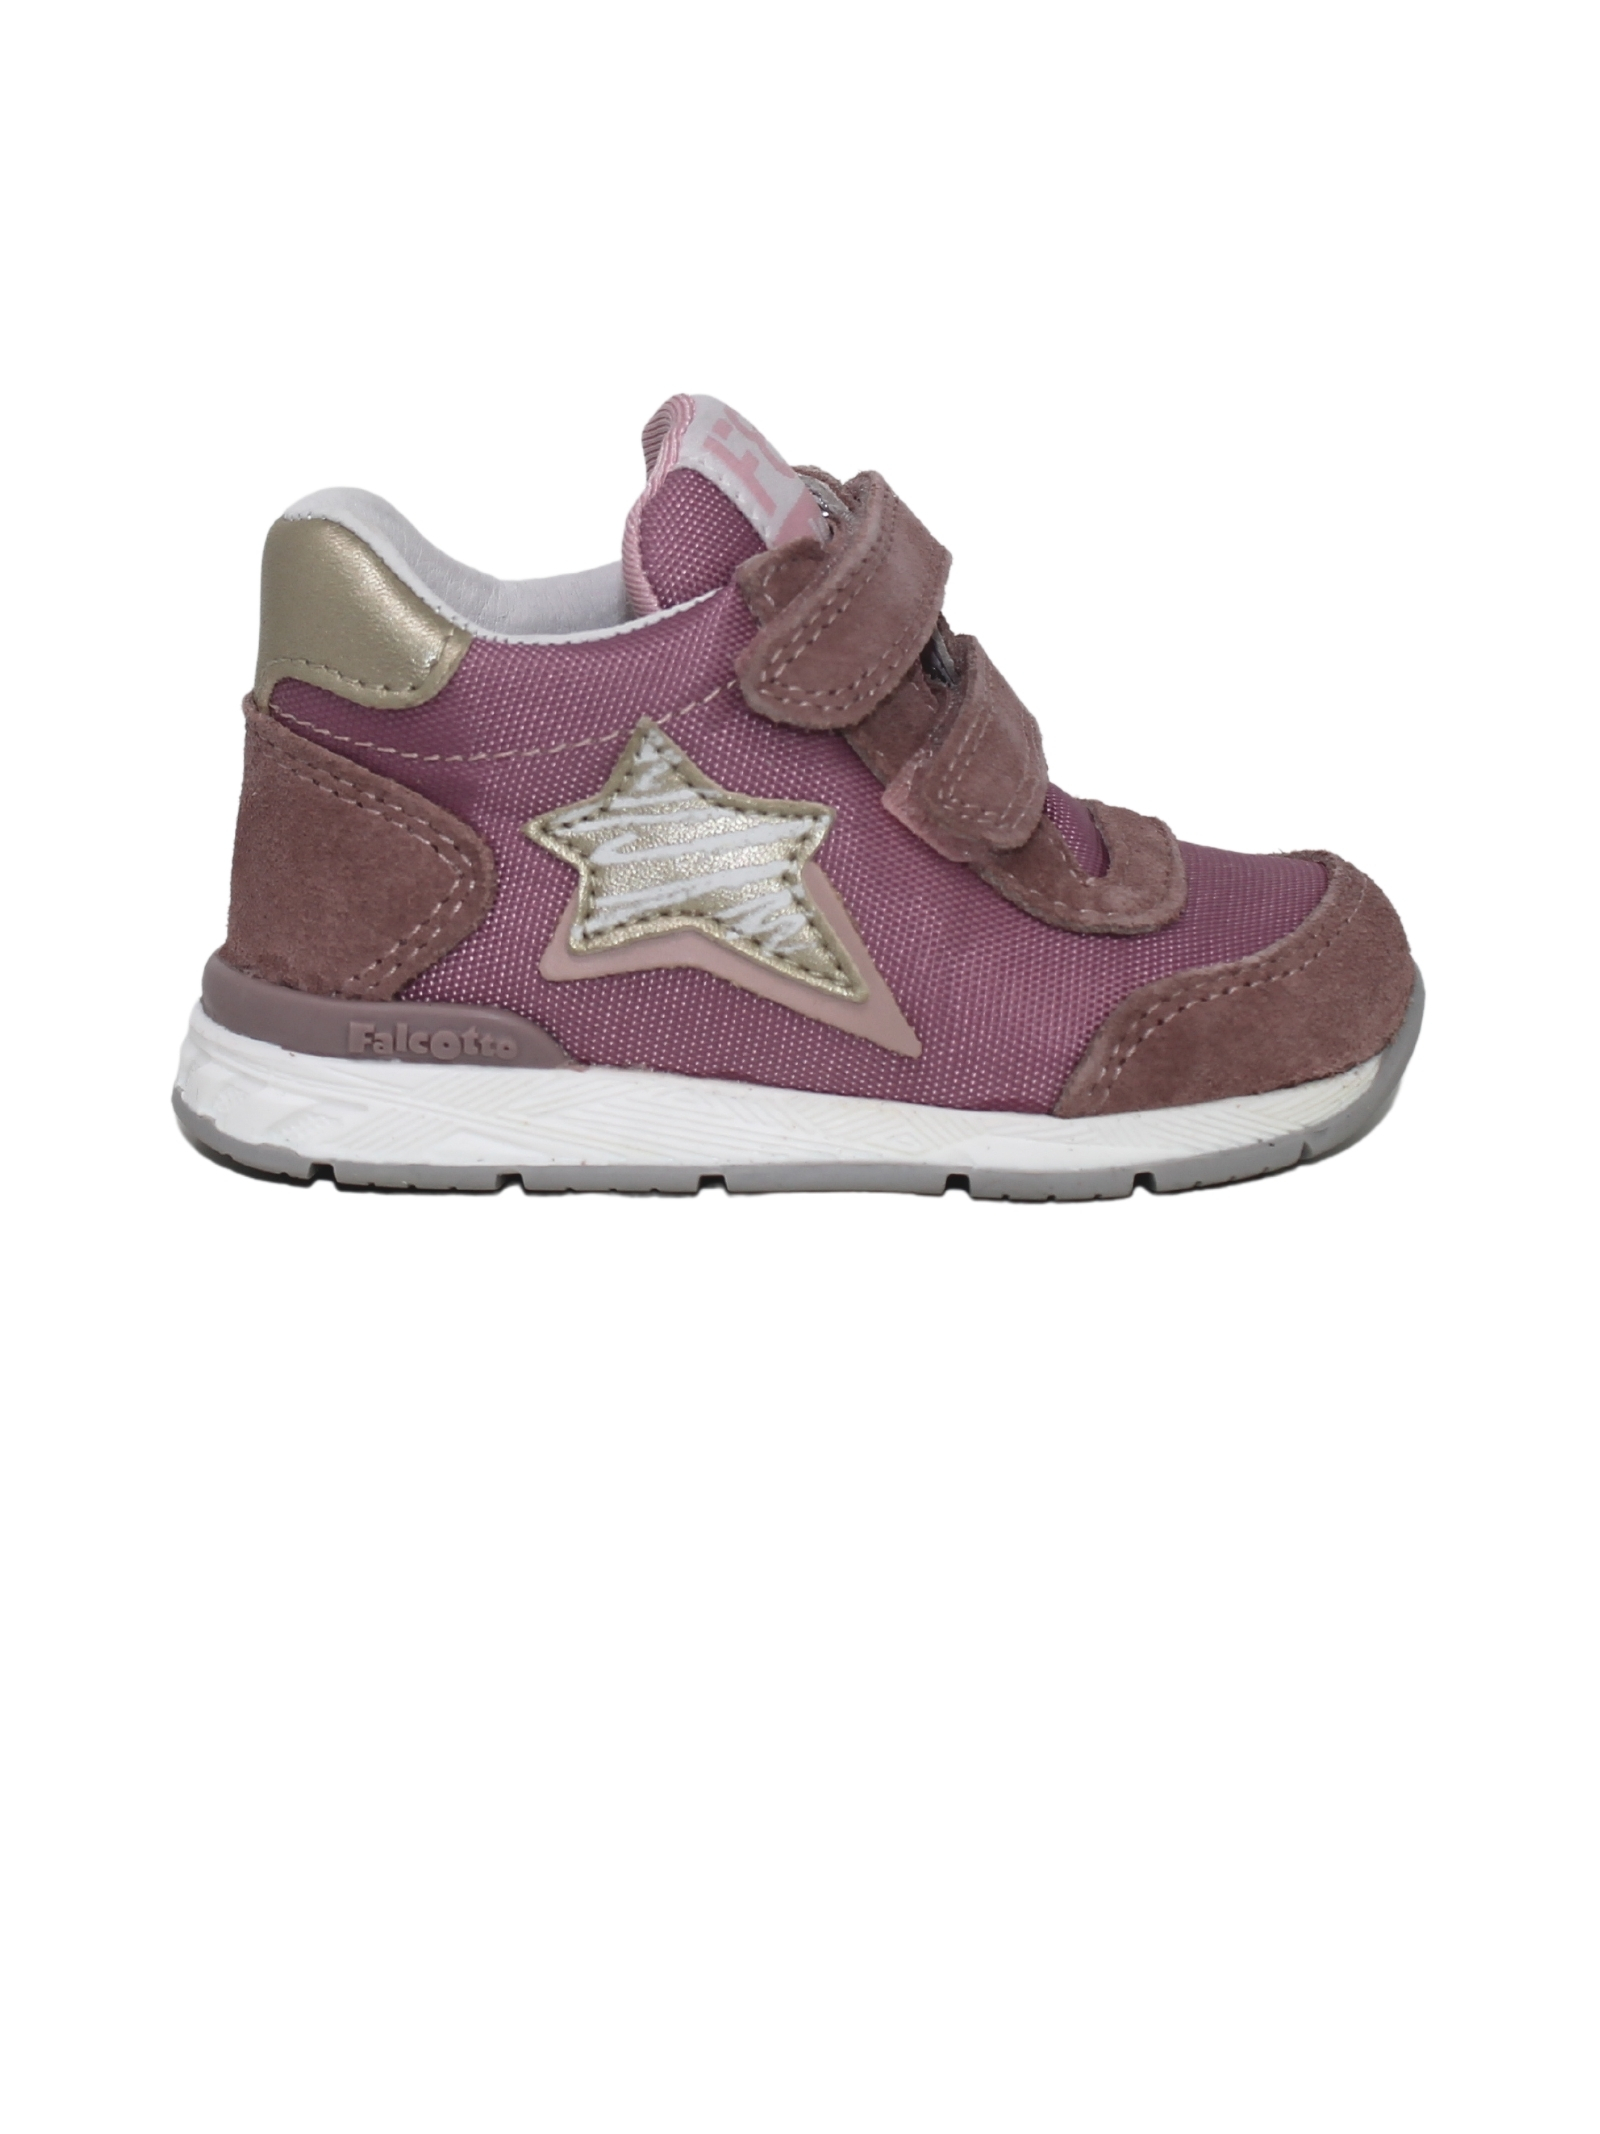 Pink Low Sneakers for Girls FALCOTTO | Sneakers | 0012015873040M03ROSE